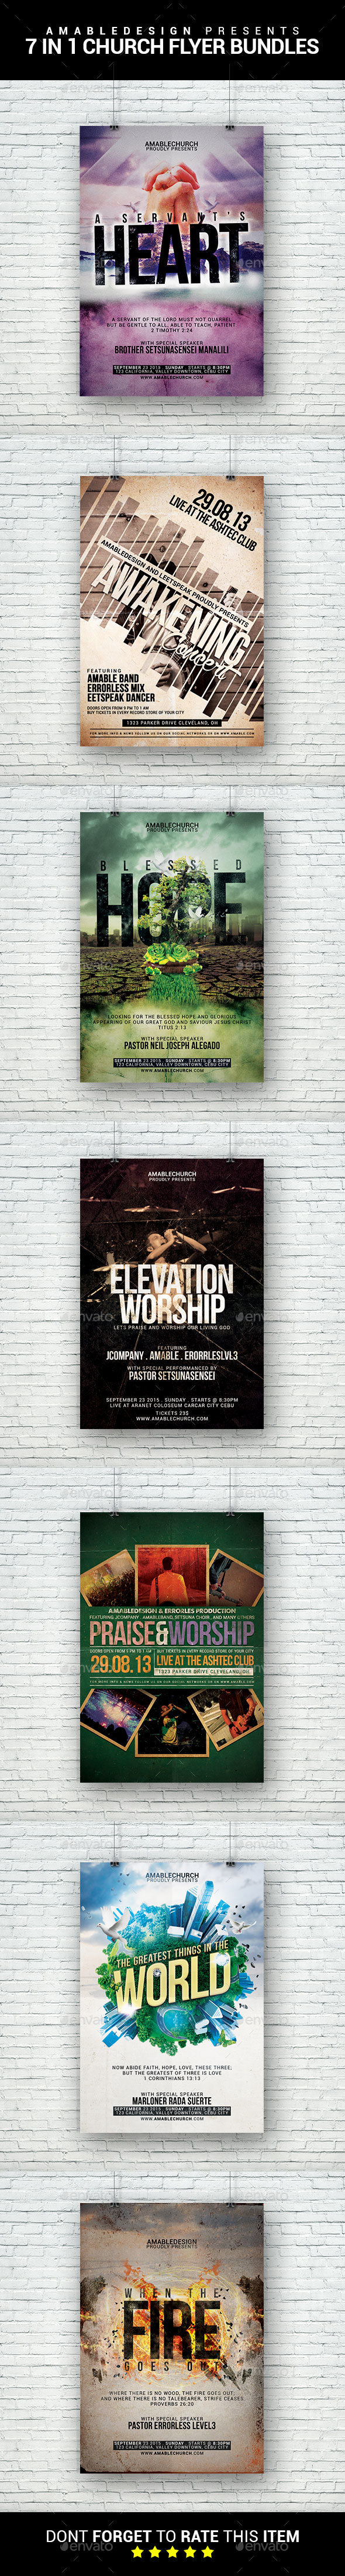 7 in 1 Church Flyer Bundle